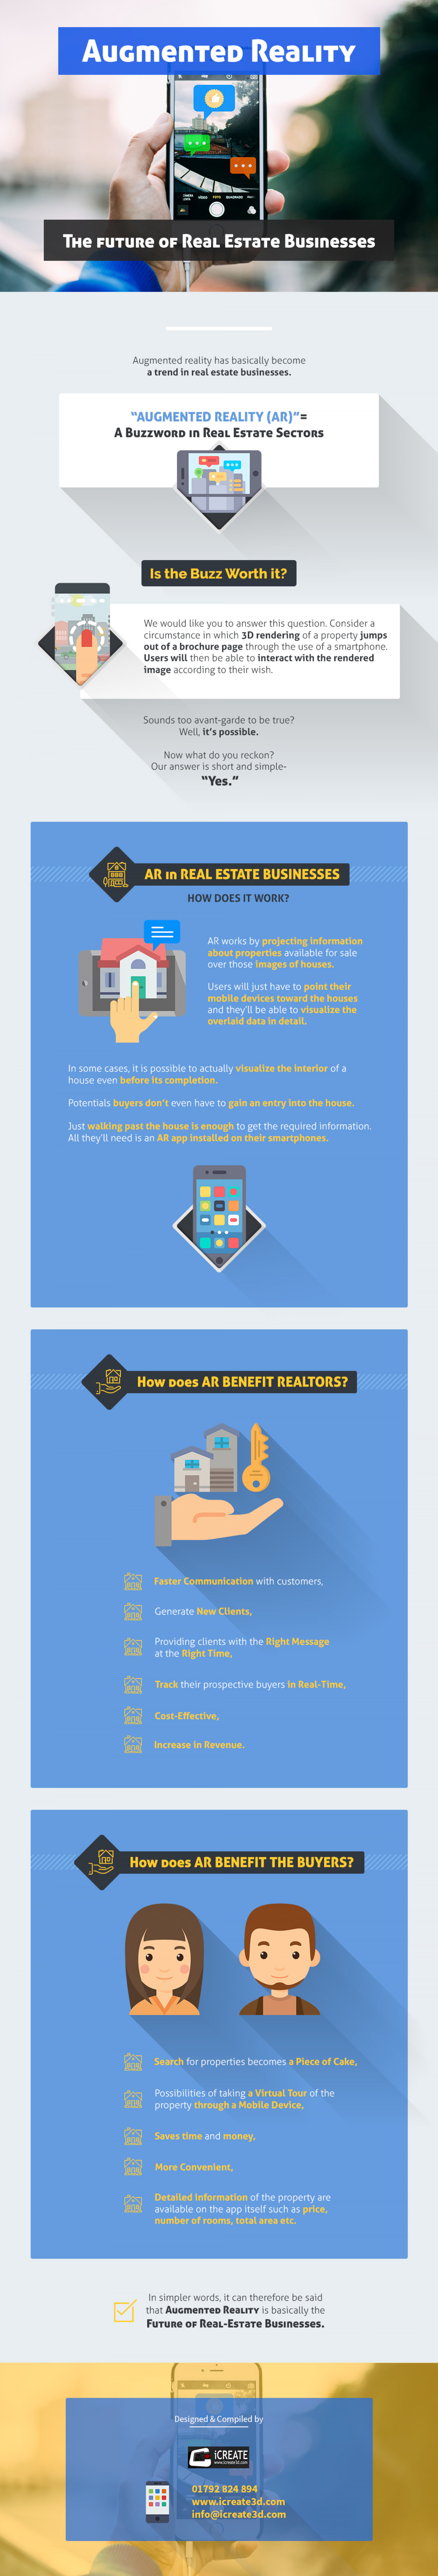 Augmented Reality: The Future of Real Estate Businesses Infographic